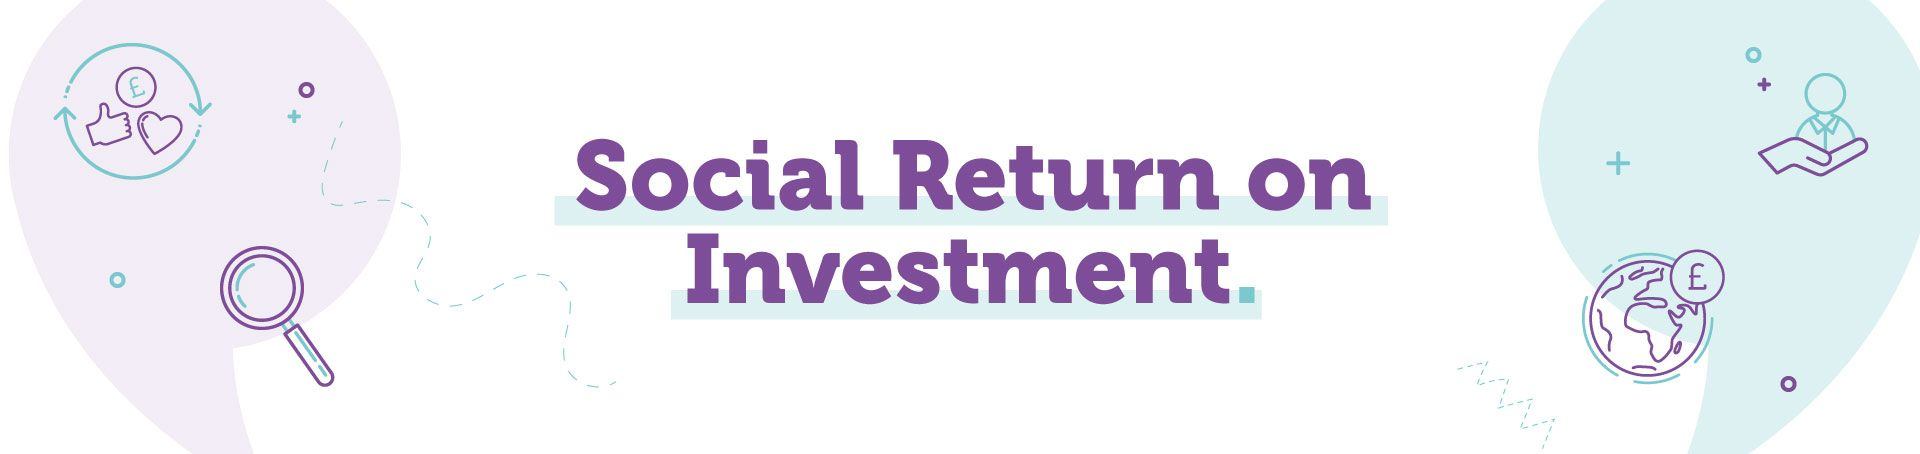 Social Return on Investment page header featuring imagery of magnifying glasses, the earth and more.